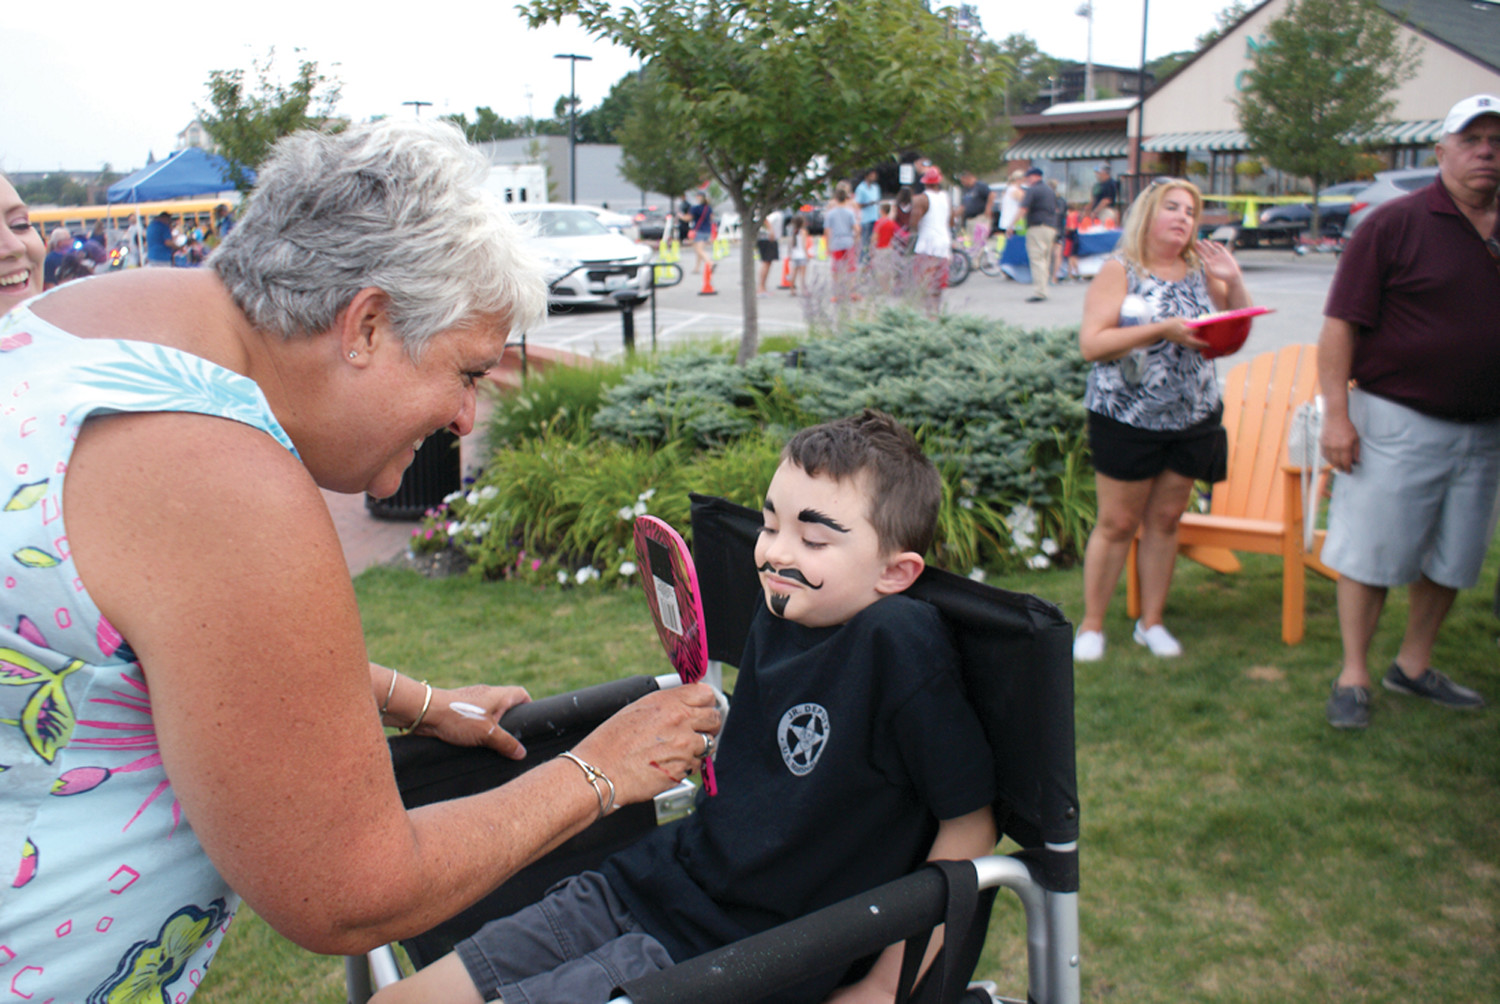 FACE ART: Toni Andersen a face painter from Wow Face Art showed Daniel Treglia, age 6, her completed artwork during National Police Night Out in Garden City Center.